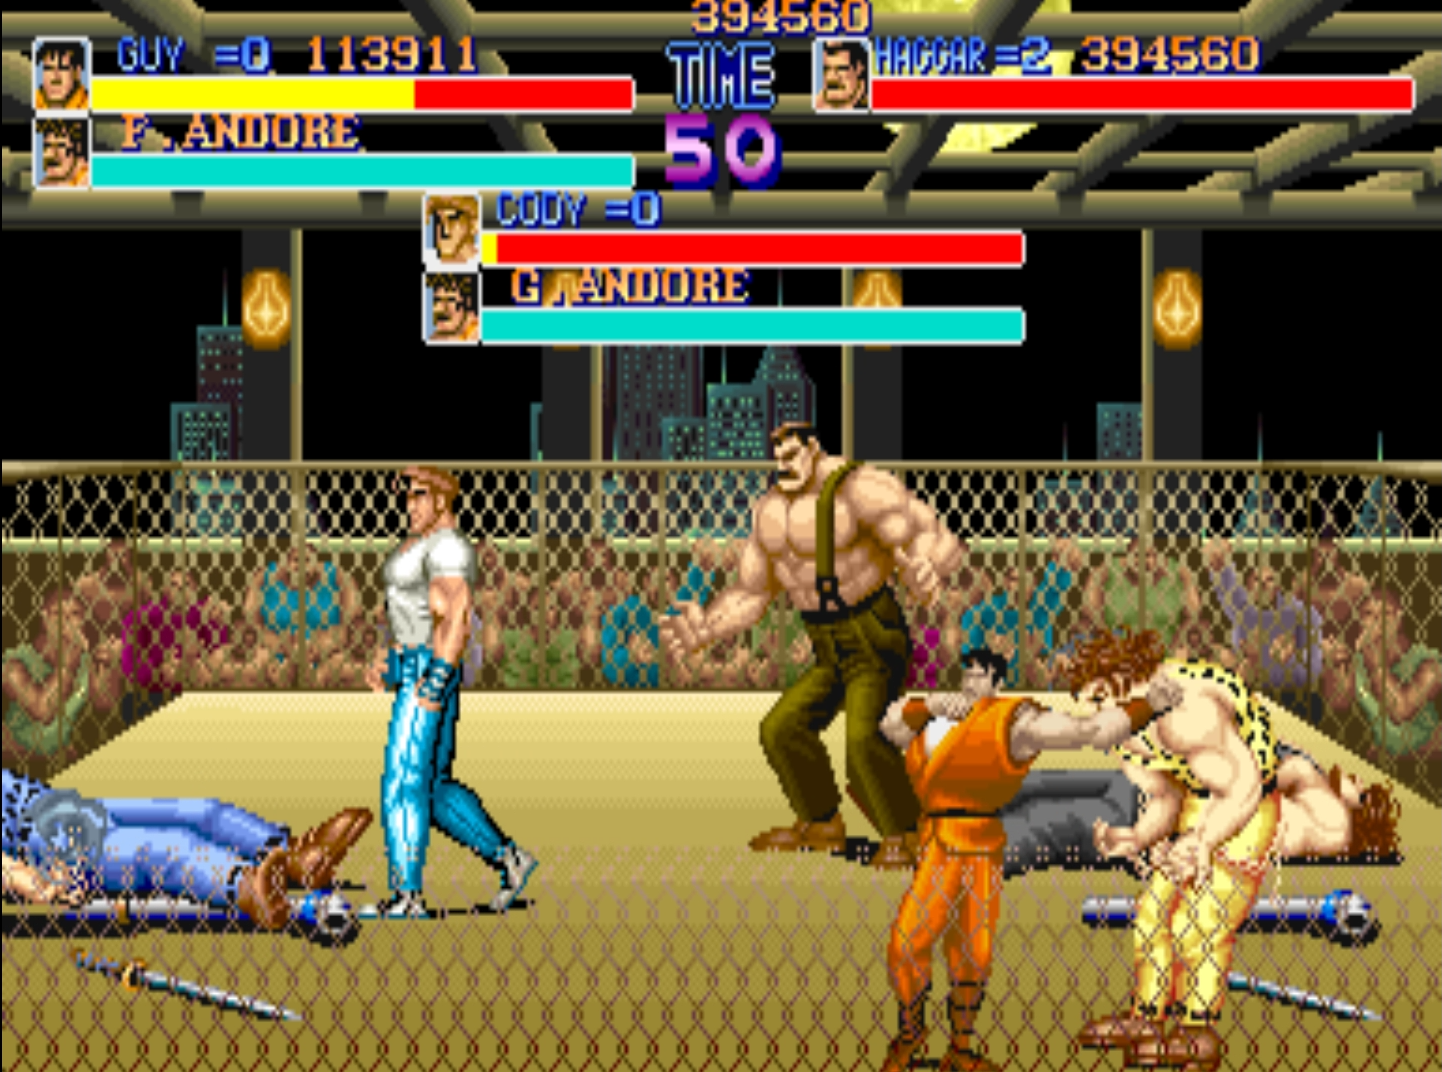 Final Fight 30th Anniversary brings 3-Player Mode to Real Arcade Hardware